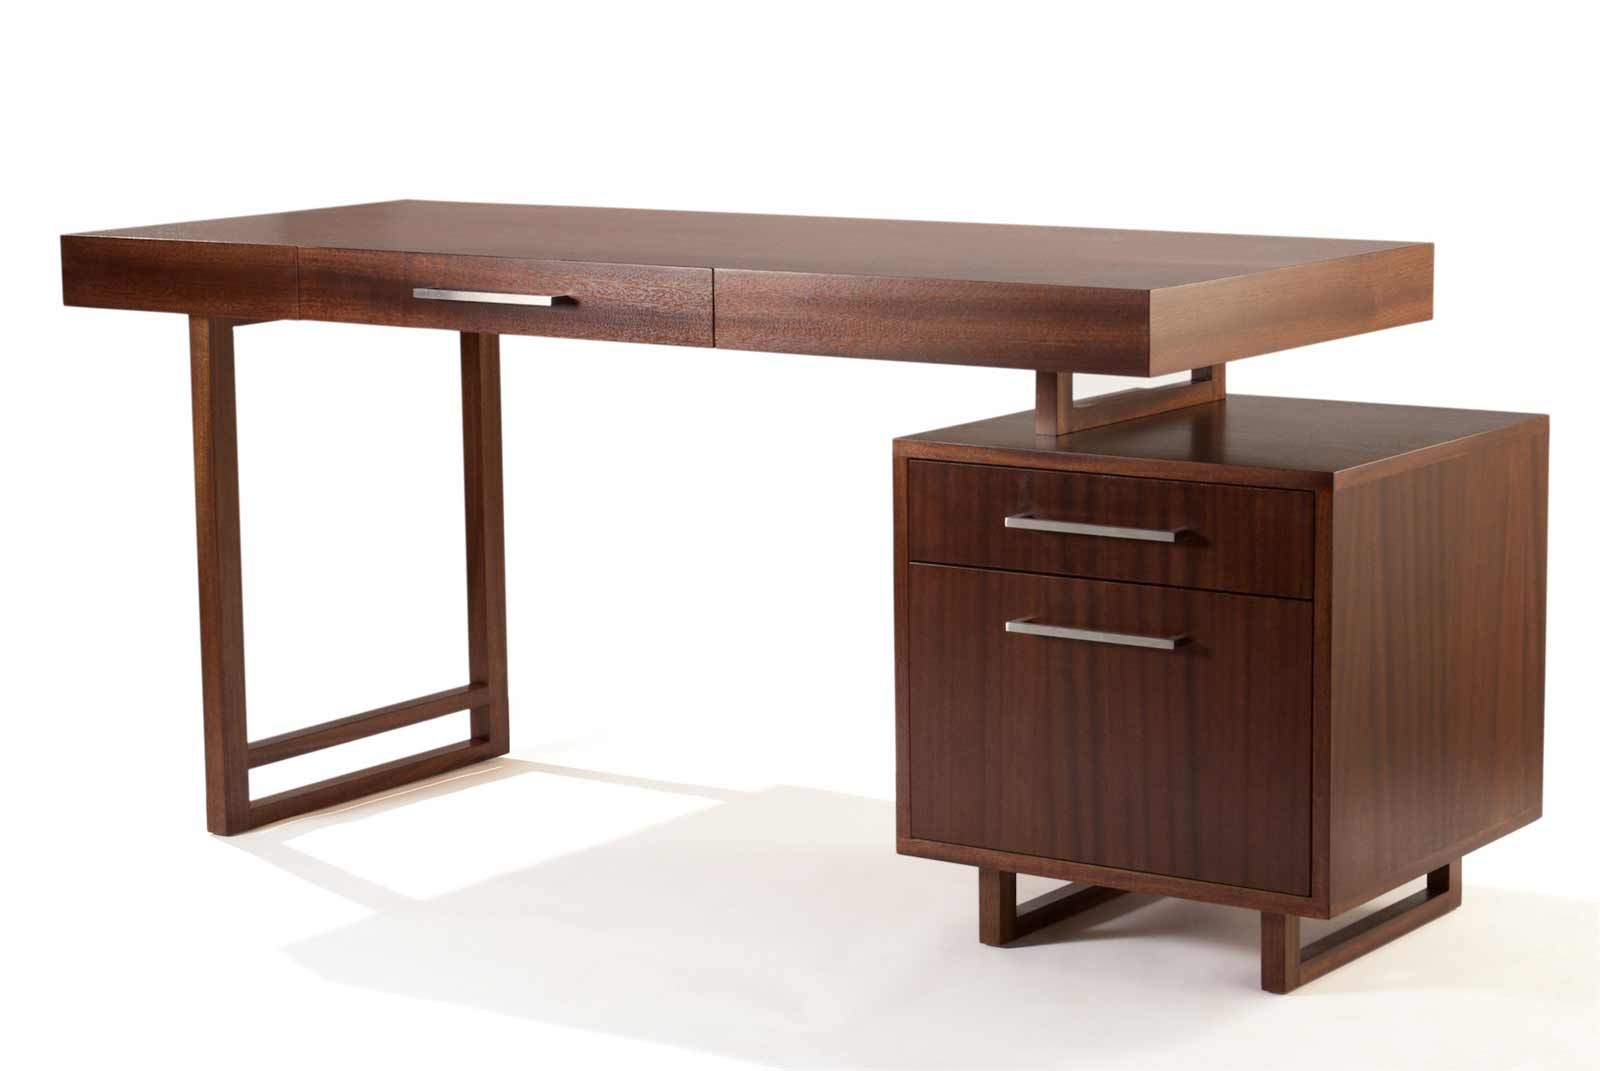 Cool Wooden Office Desk Wood Office Desk, Modern Office Desk, Office Table,  Home